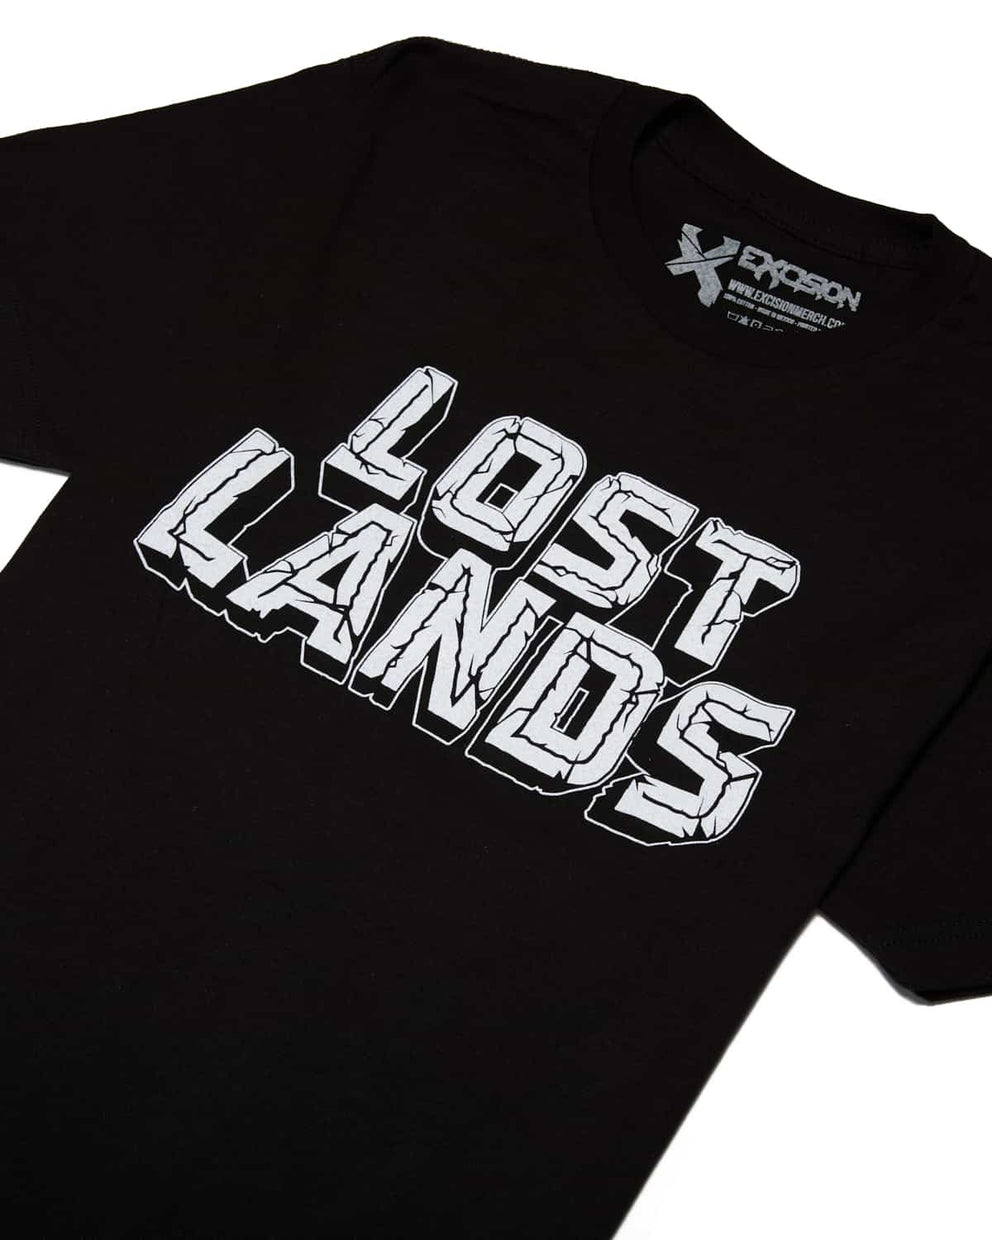 Official Lost Lands 2018 Lineup T-Shirt (Black/White)